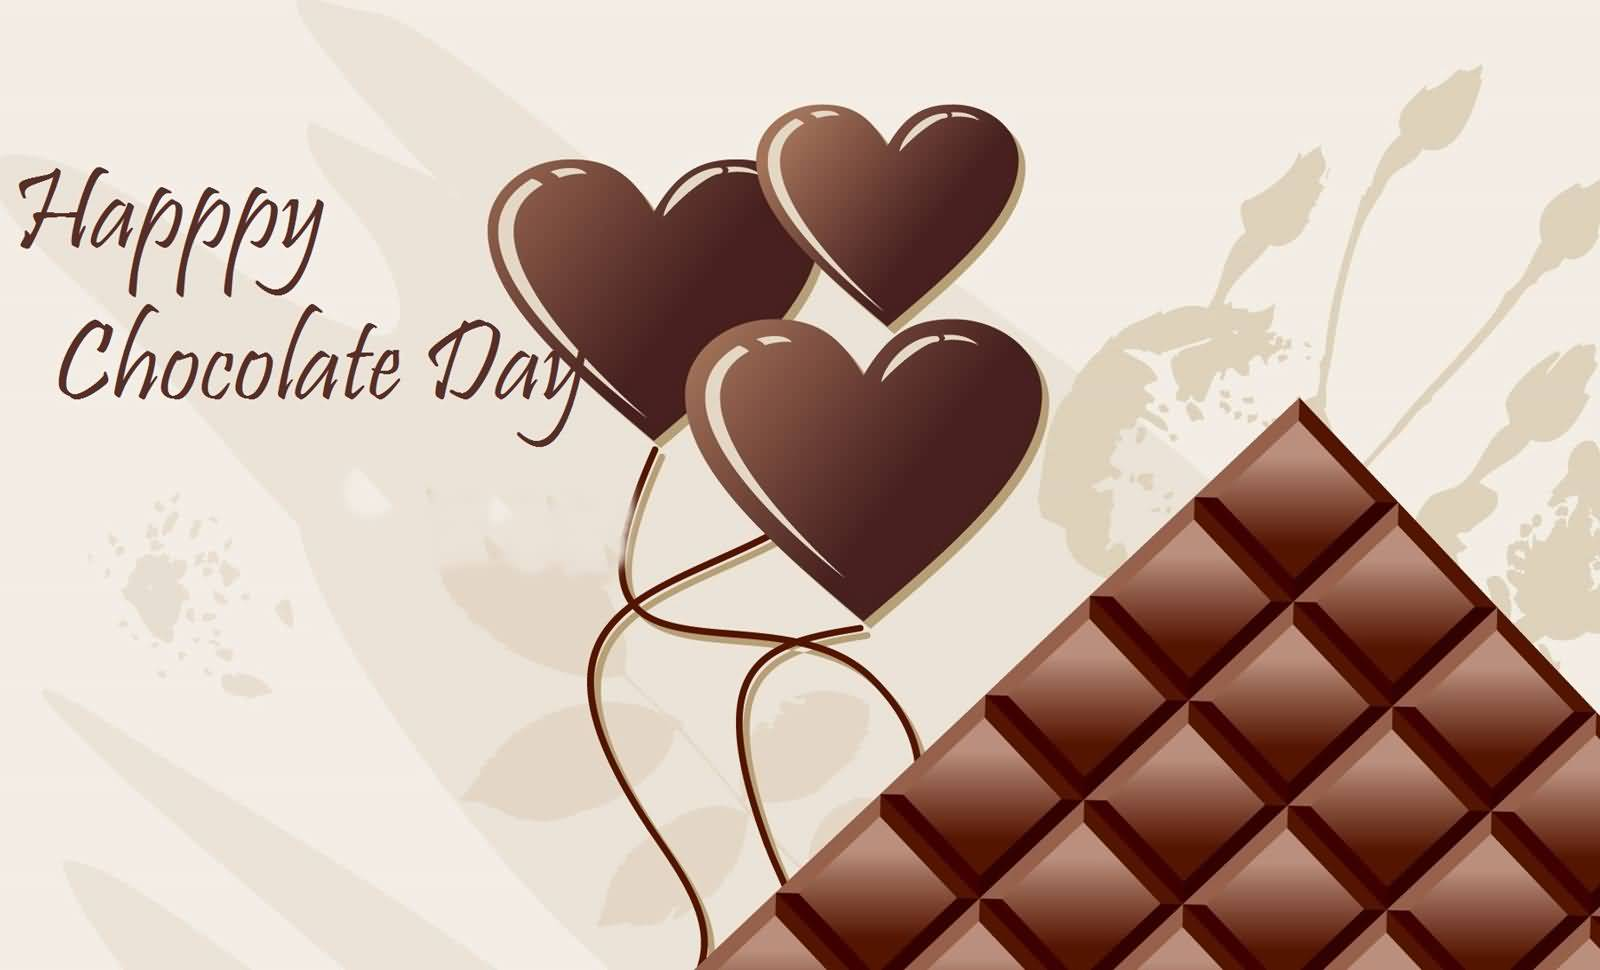 Happy Chocolate Day Heart Chocolates Picture